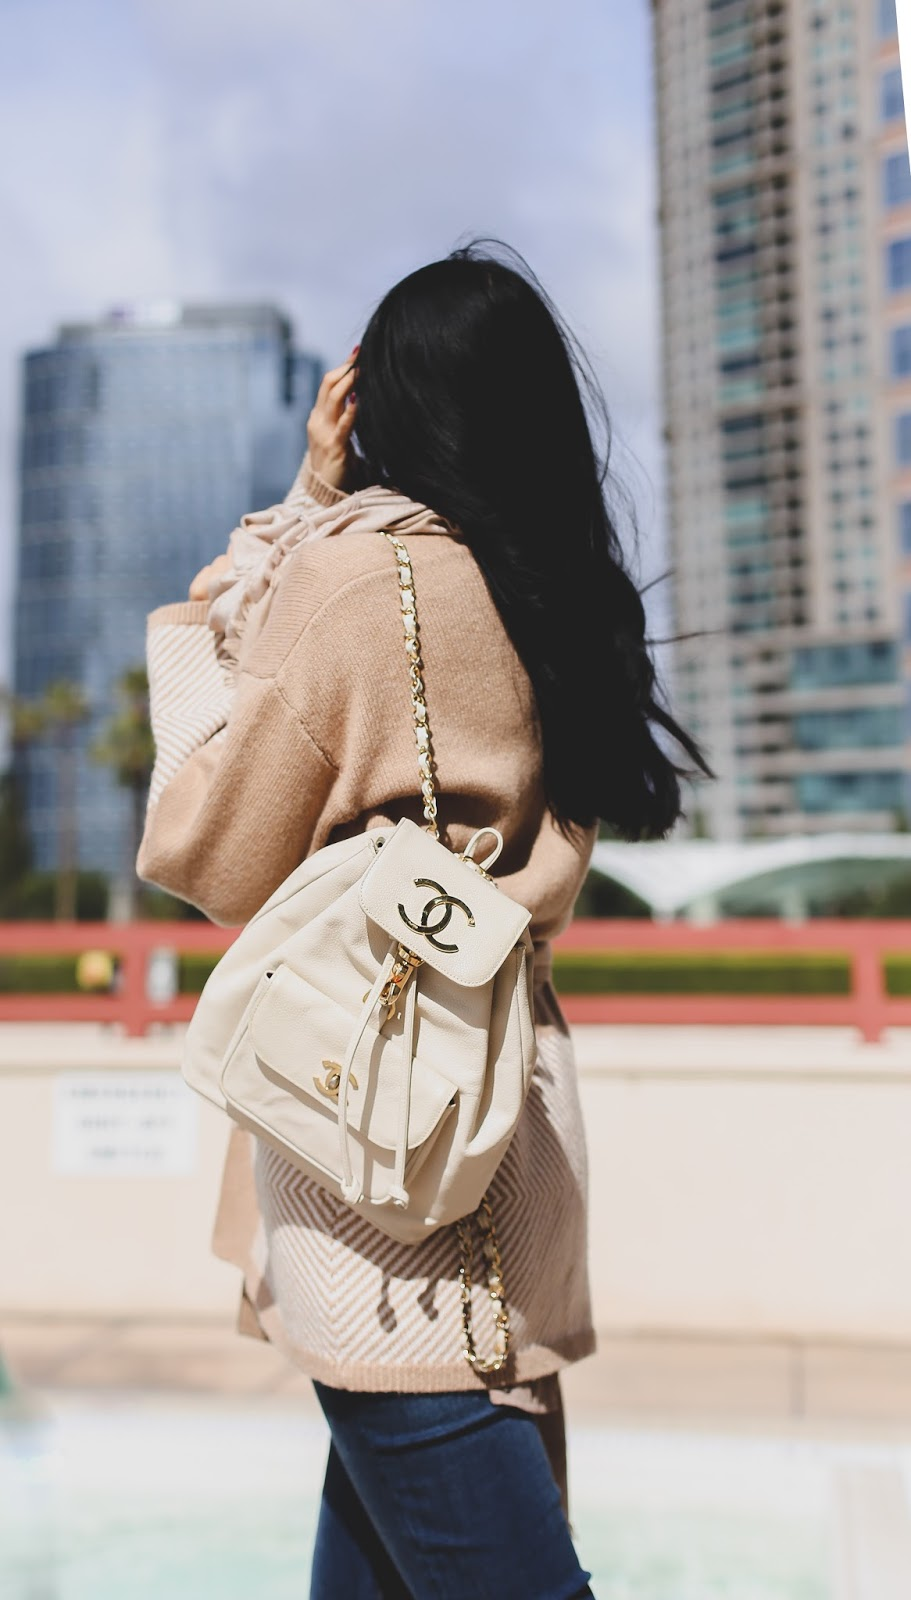 Chanel backpack outfit